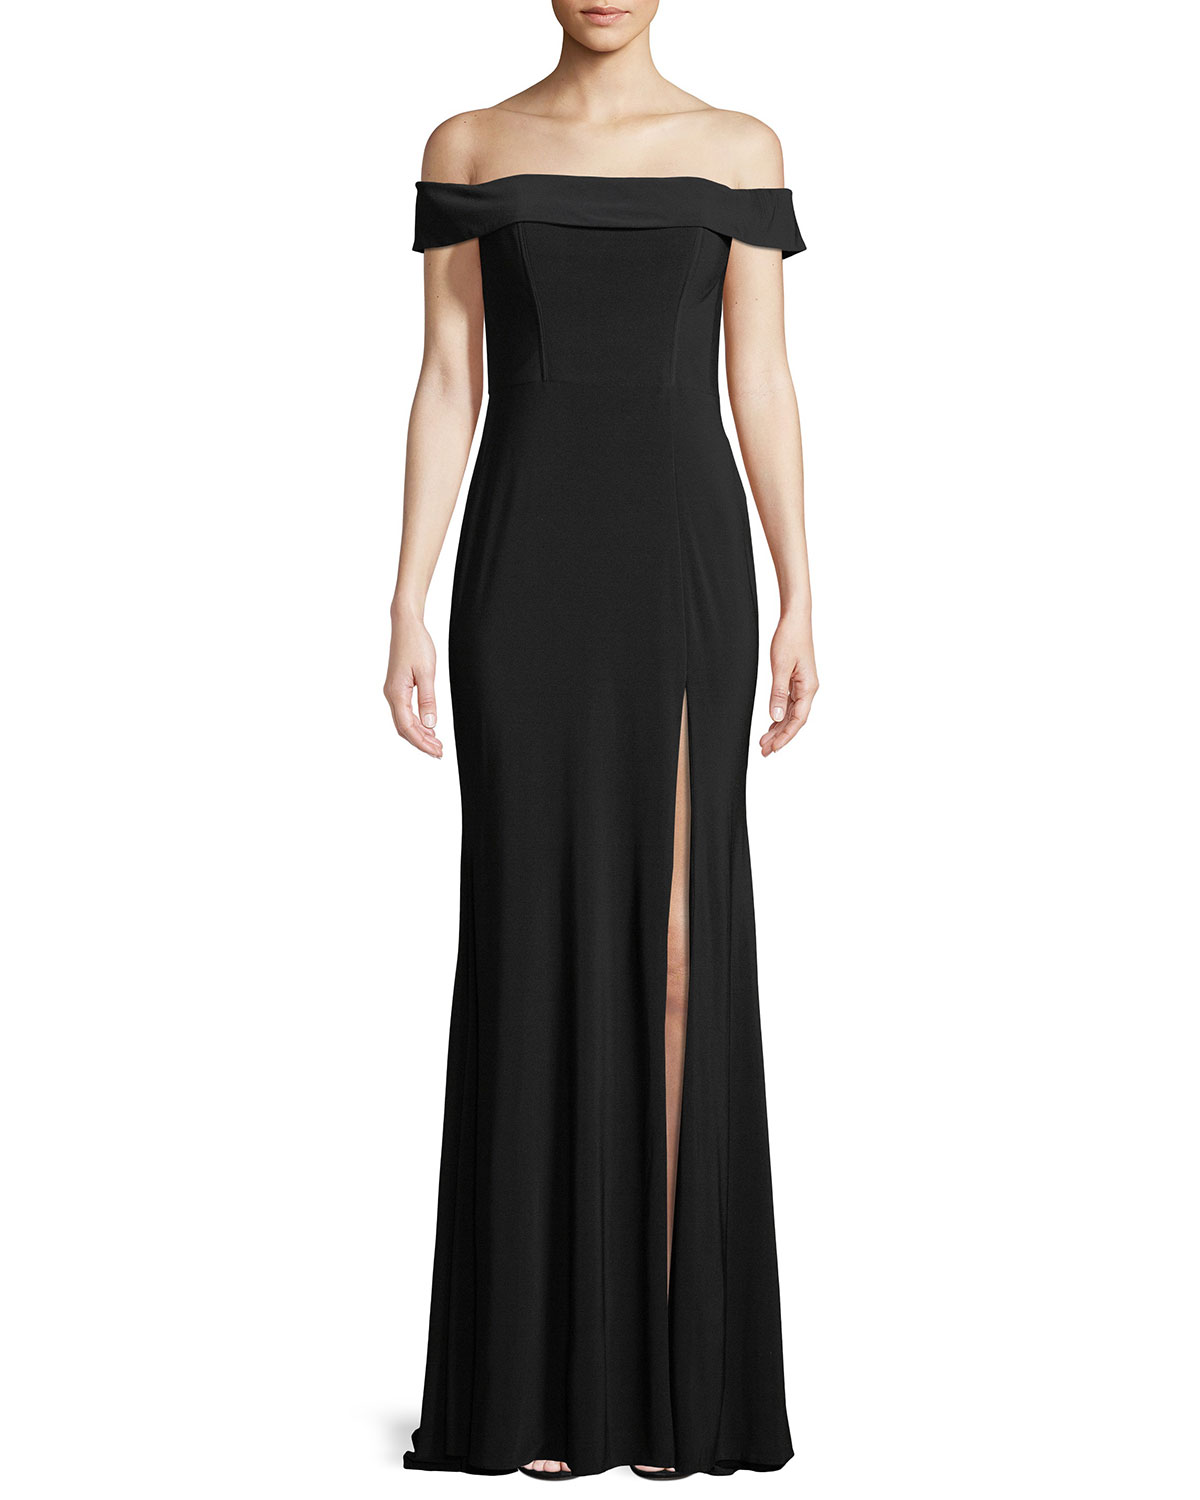 37fa5f6032f Faviana Jersey Off-the-Shoulder Gown w  Slit